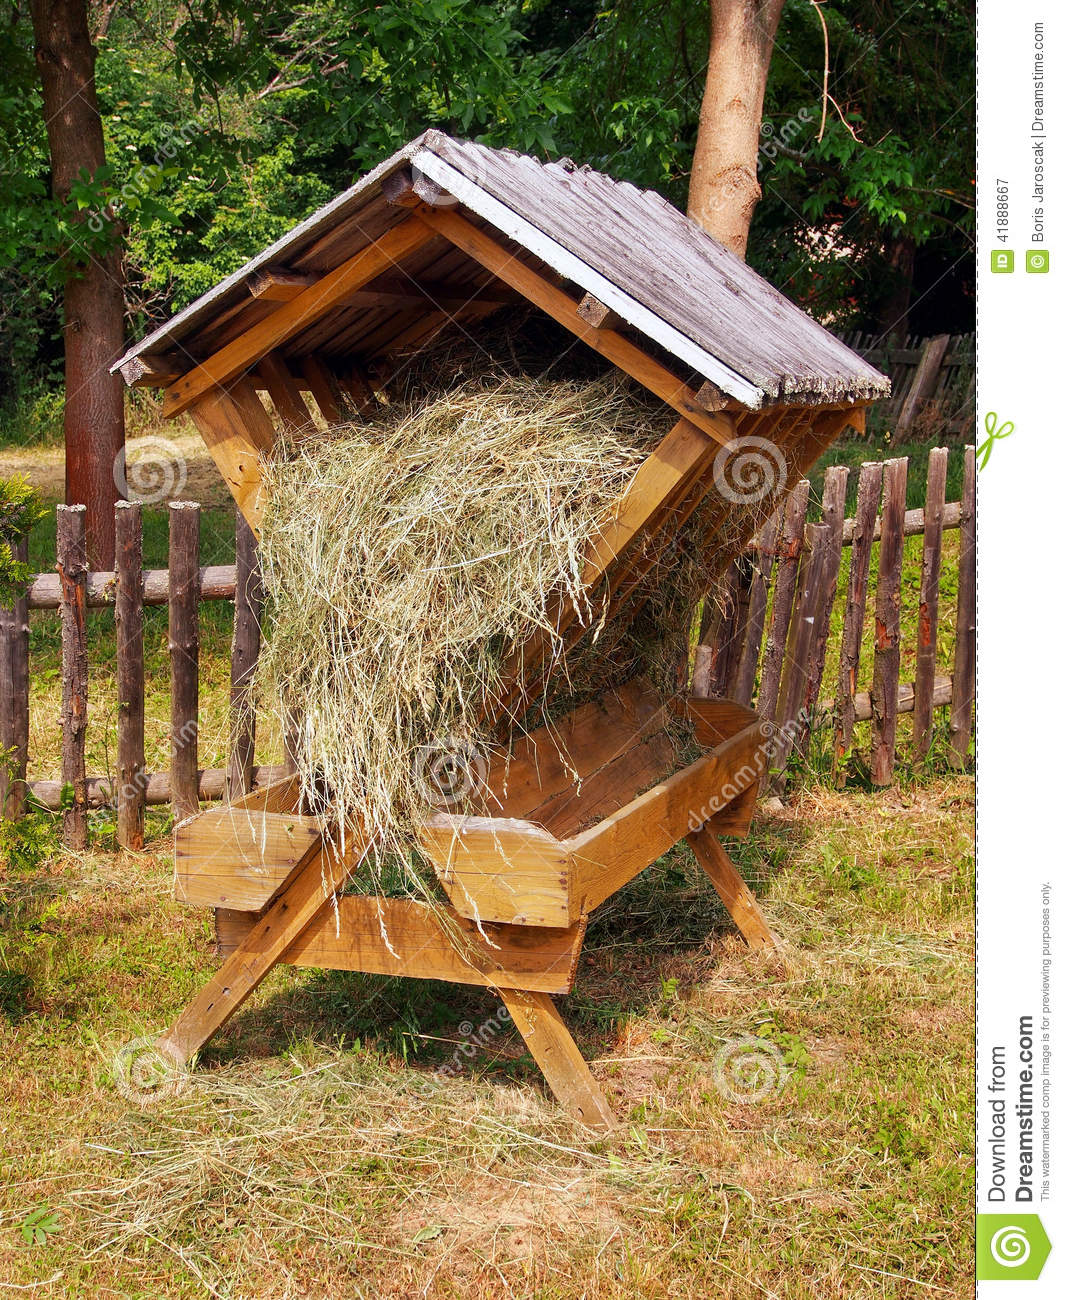 Sheltered Wooden Feeder Fully Filled With Hay Stock Photo ...